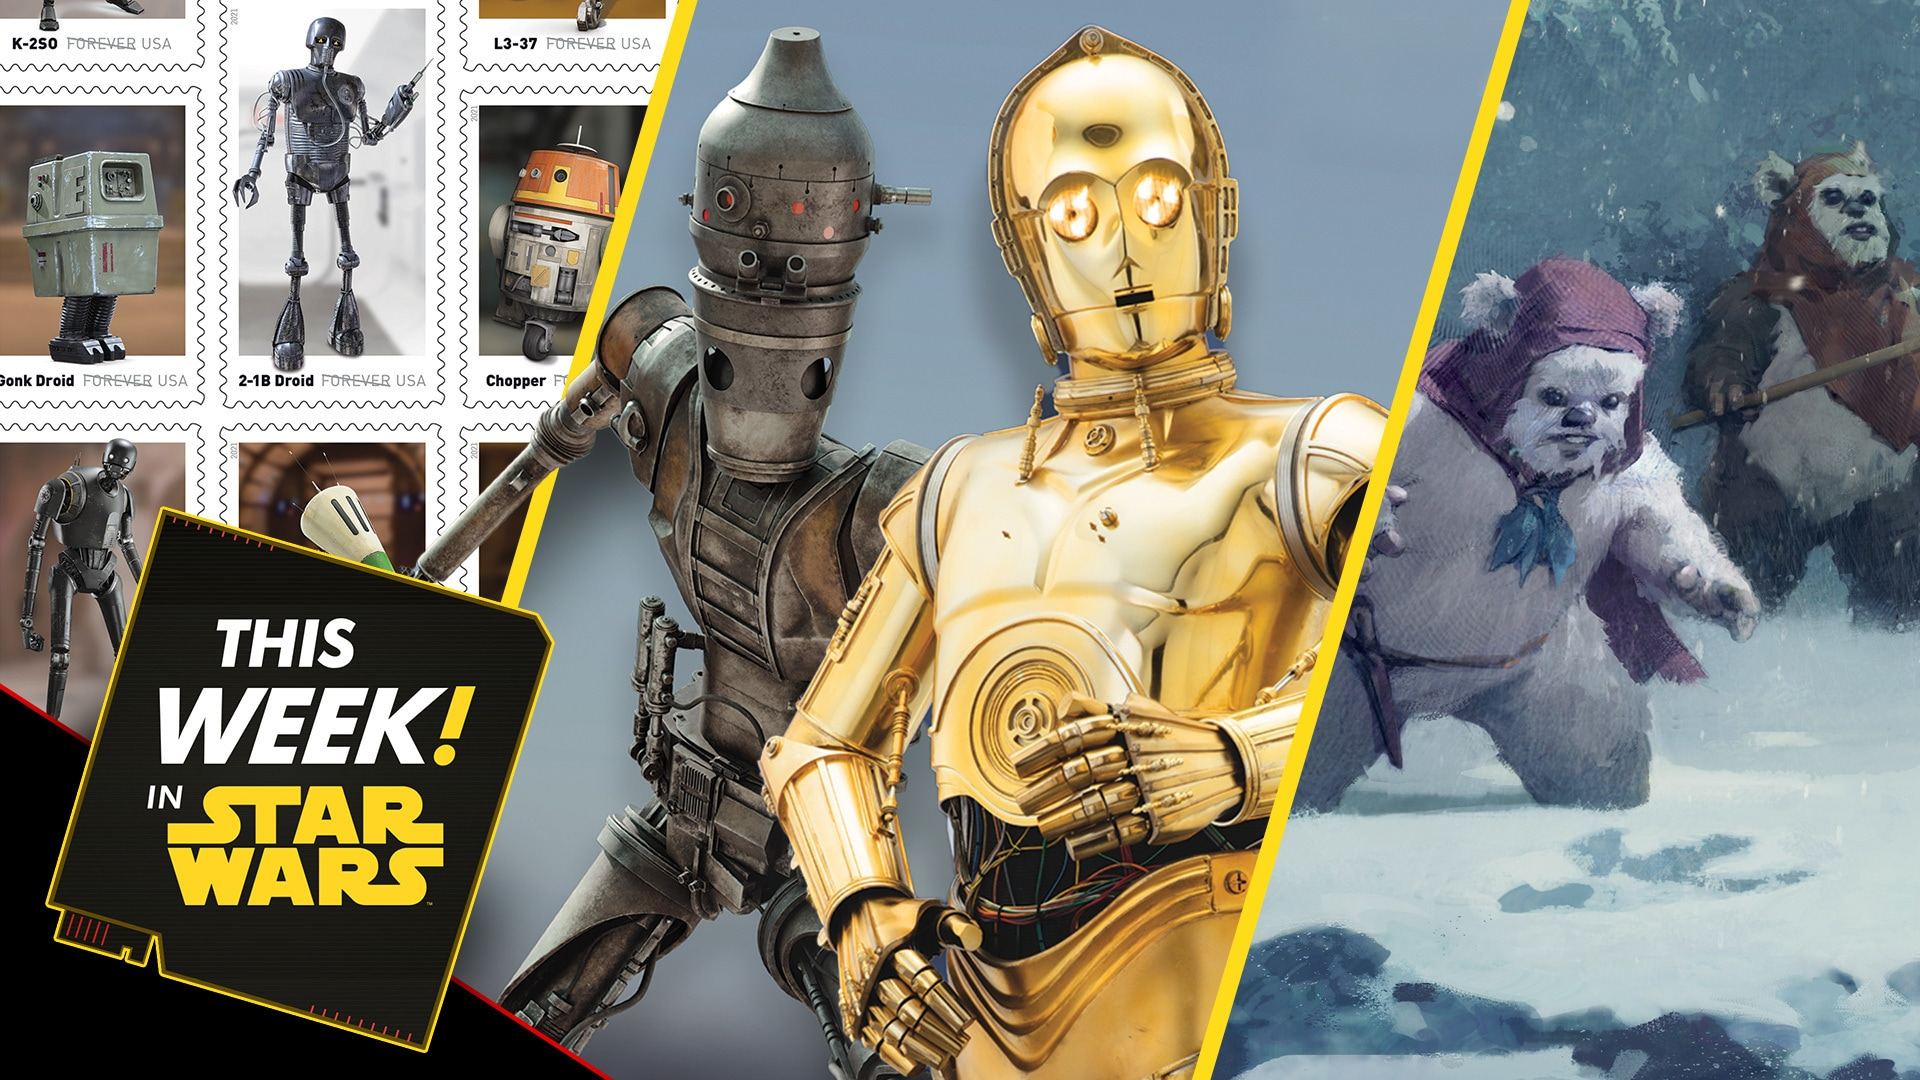 Droids Join USPS, An Exclusive Look at Life Day Art, and More!